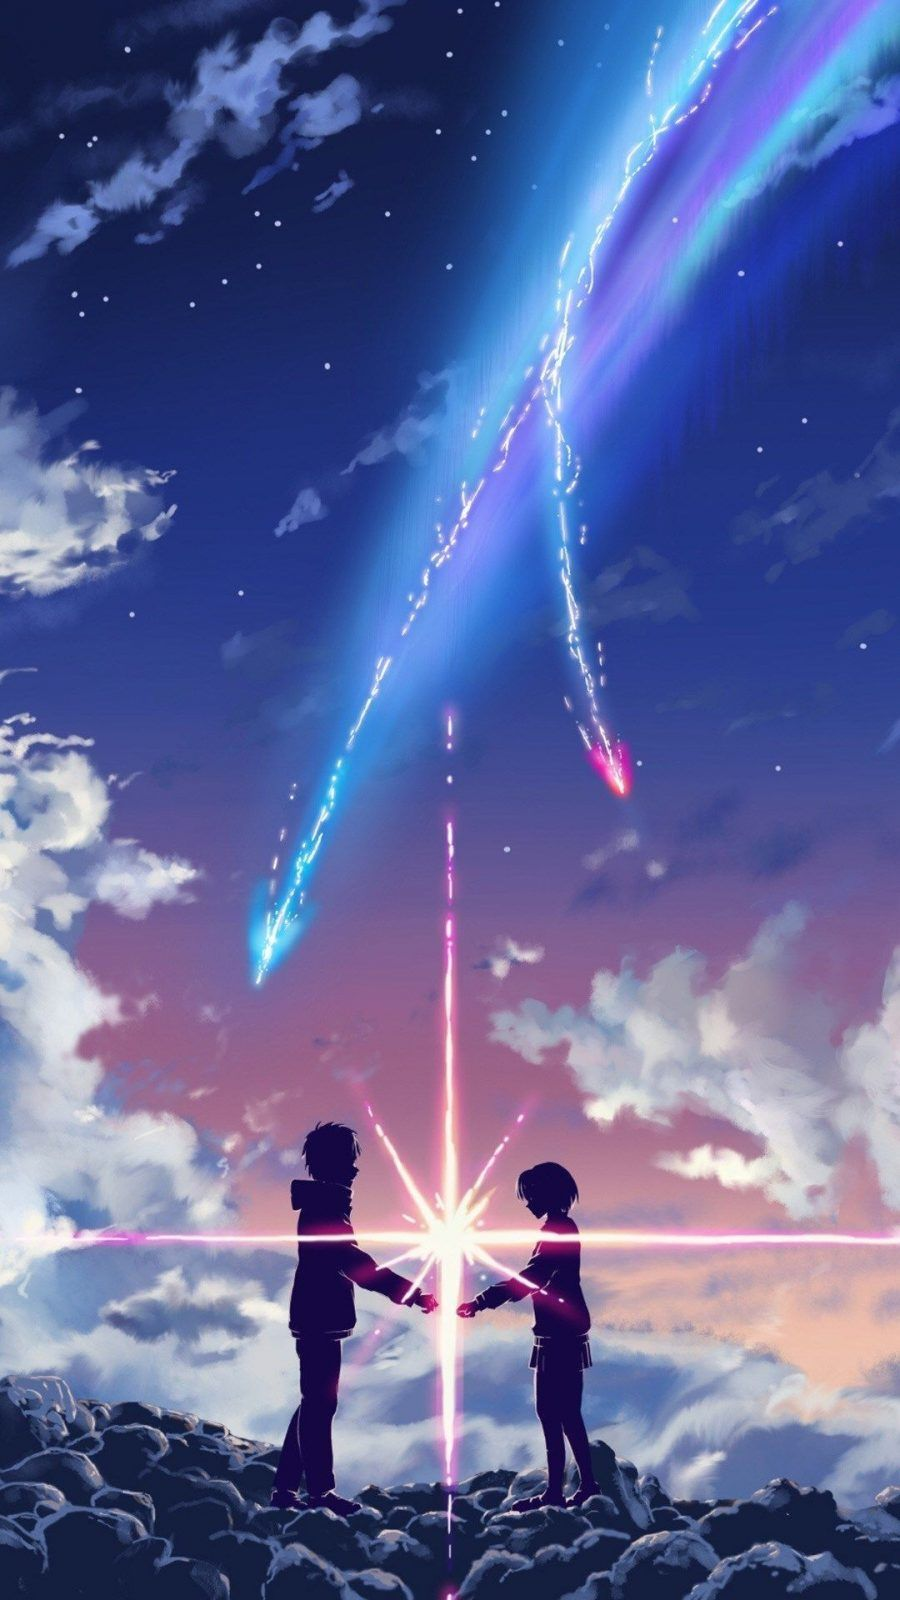 Iphone Wallpaper Aesthetic 34 Anime Backgrounds Wallpapers Anime Wallpaper Iphone Anime Wallpaper Download